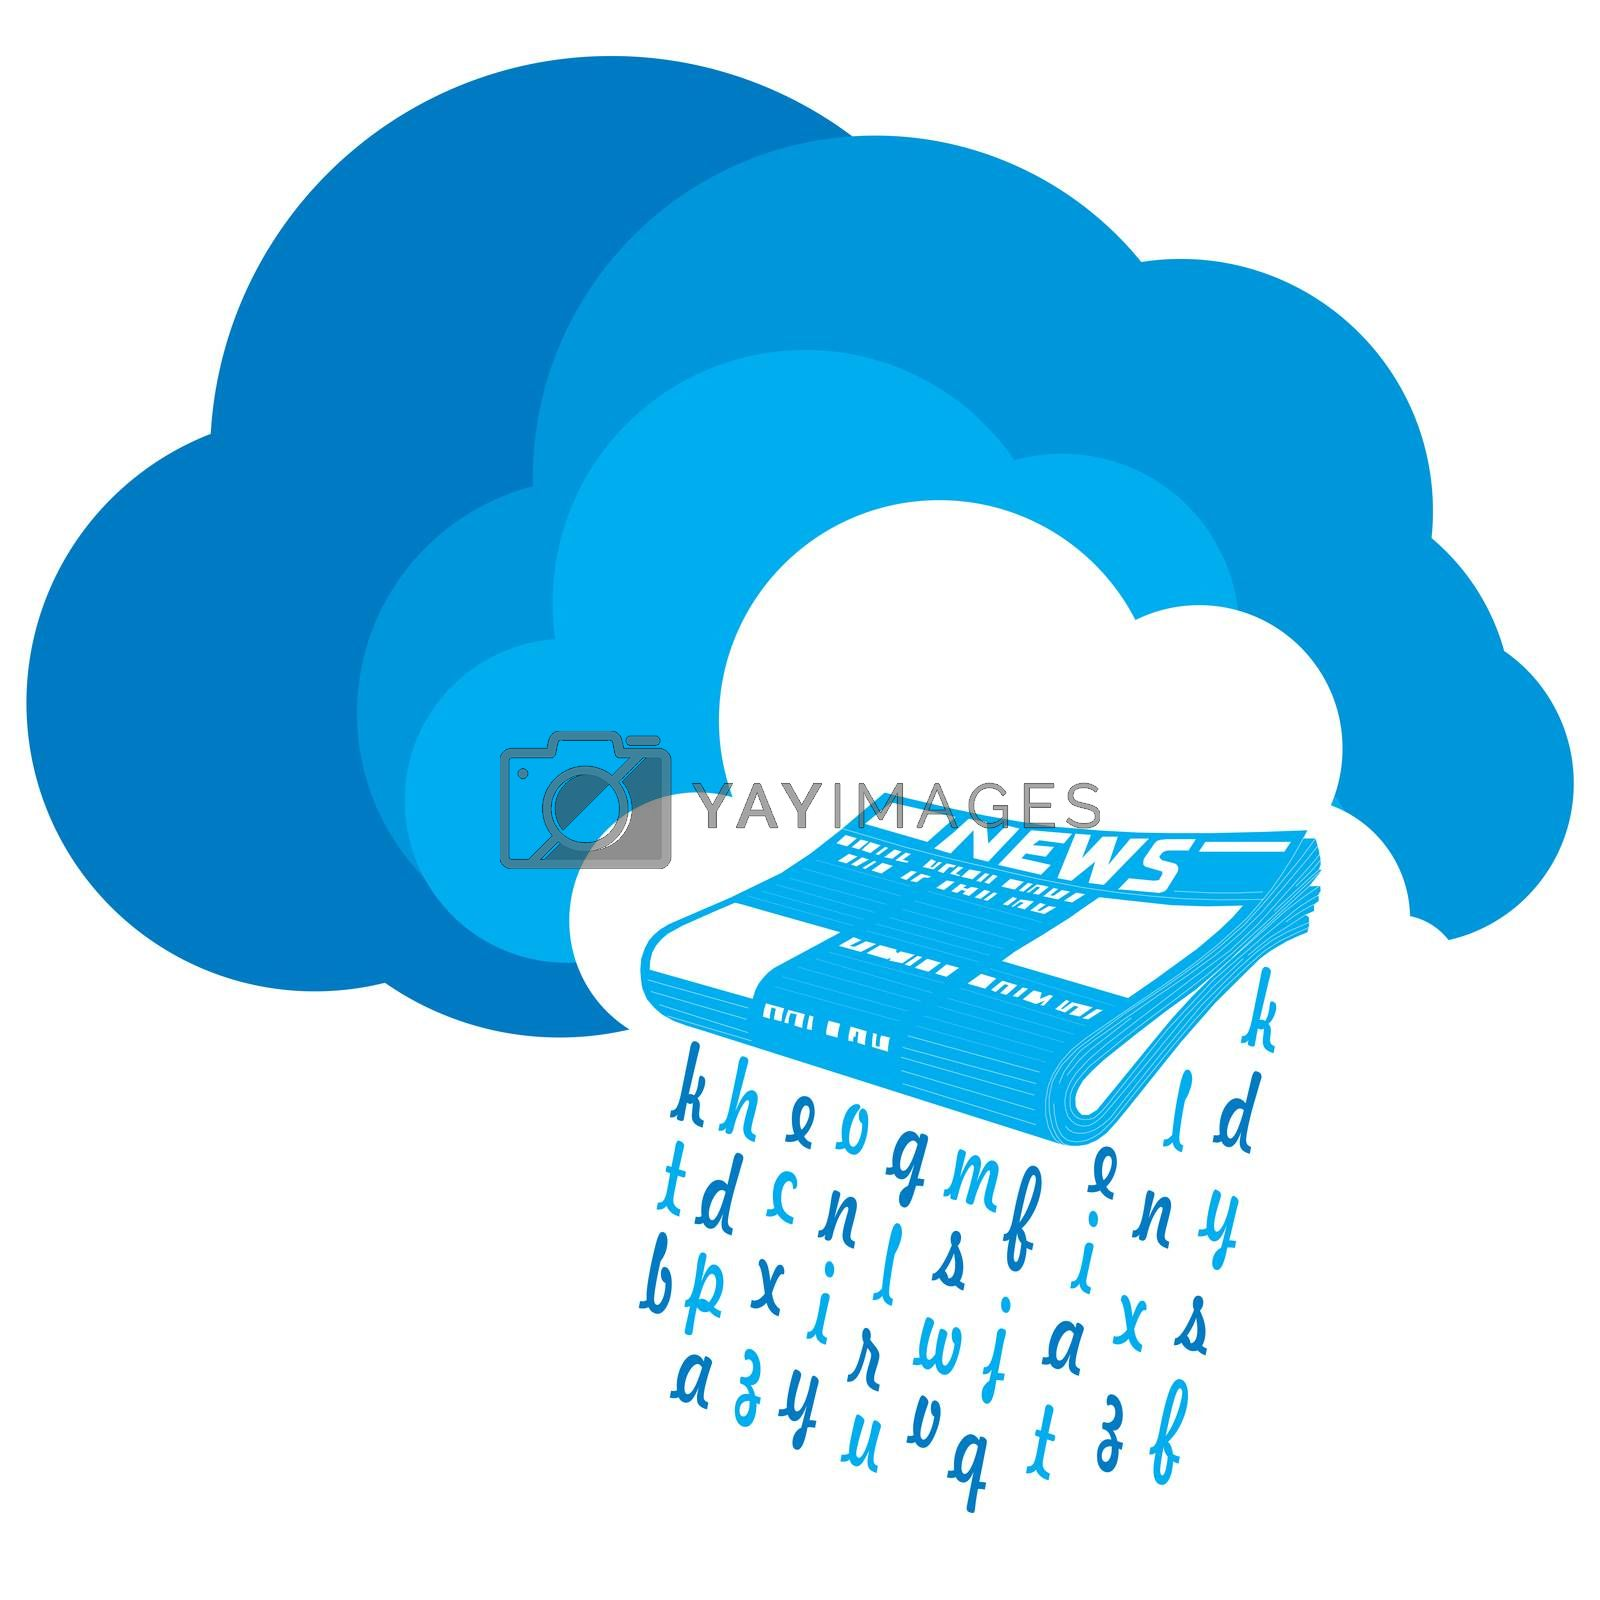 Royalty free image of News from the Cloud by tharun15